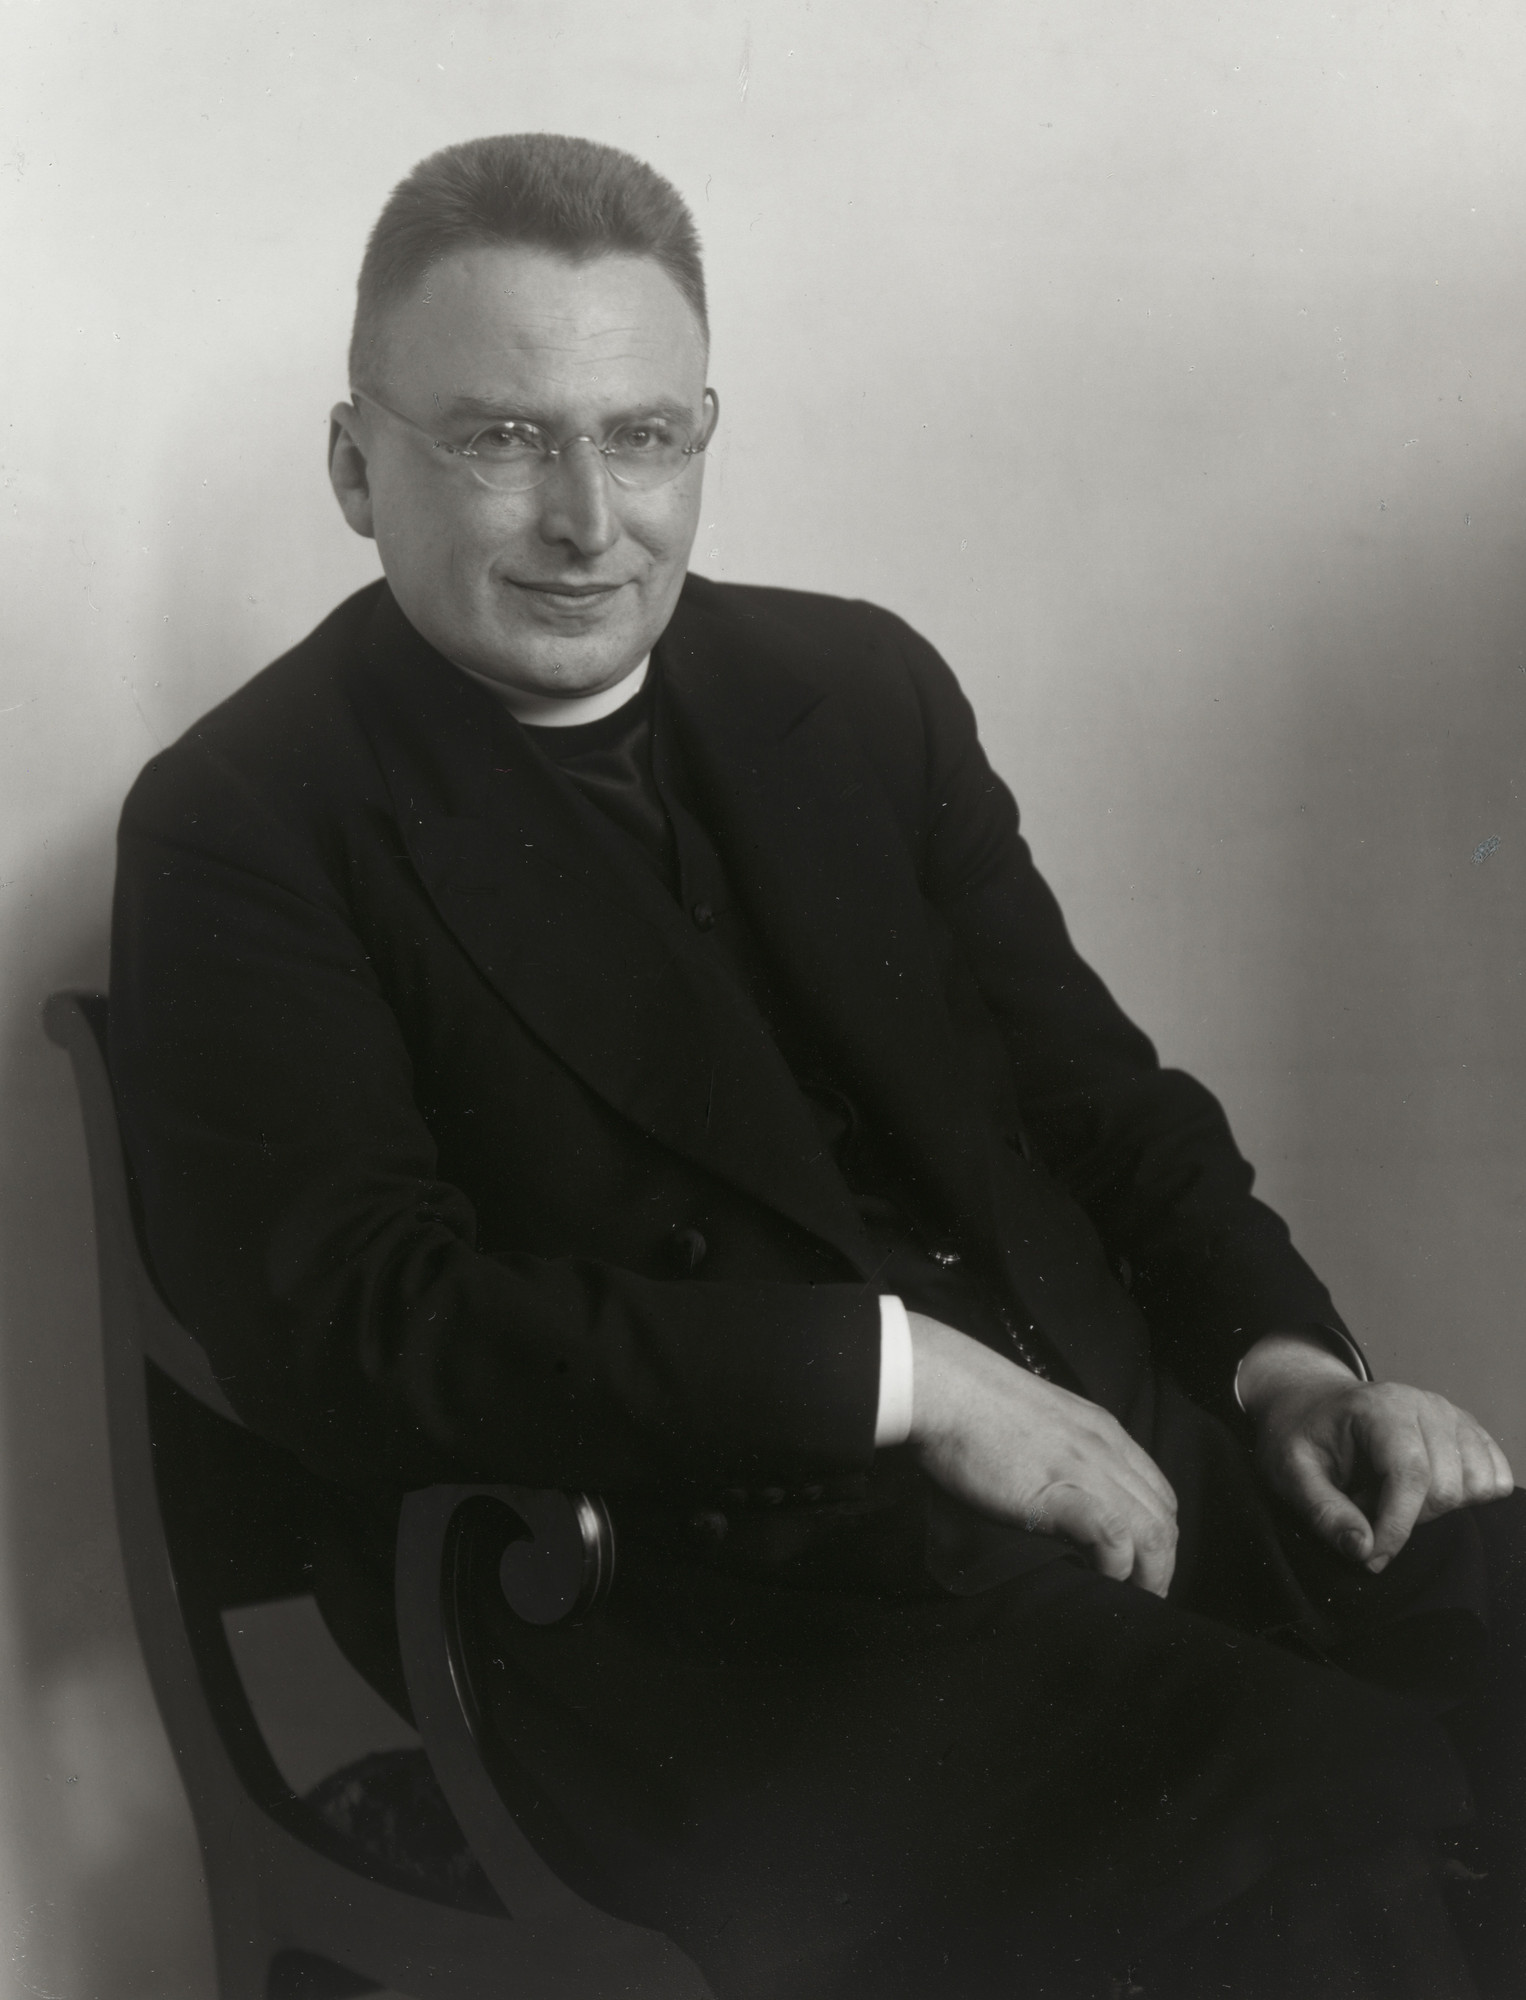 August Sander. Catholic Priest. c. 1926